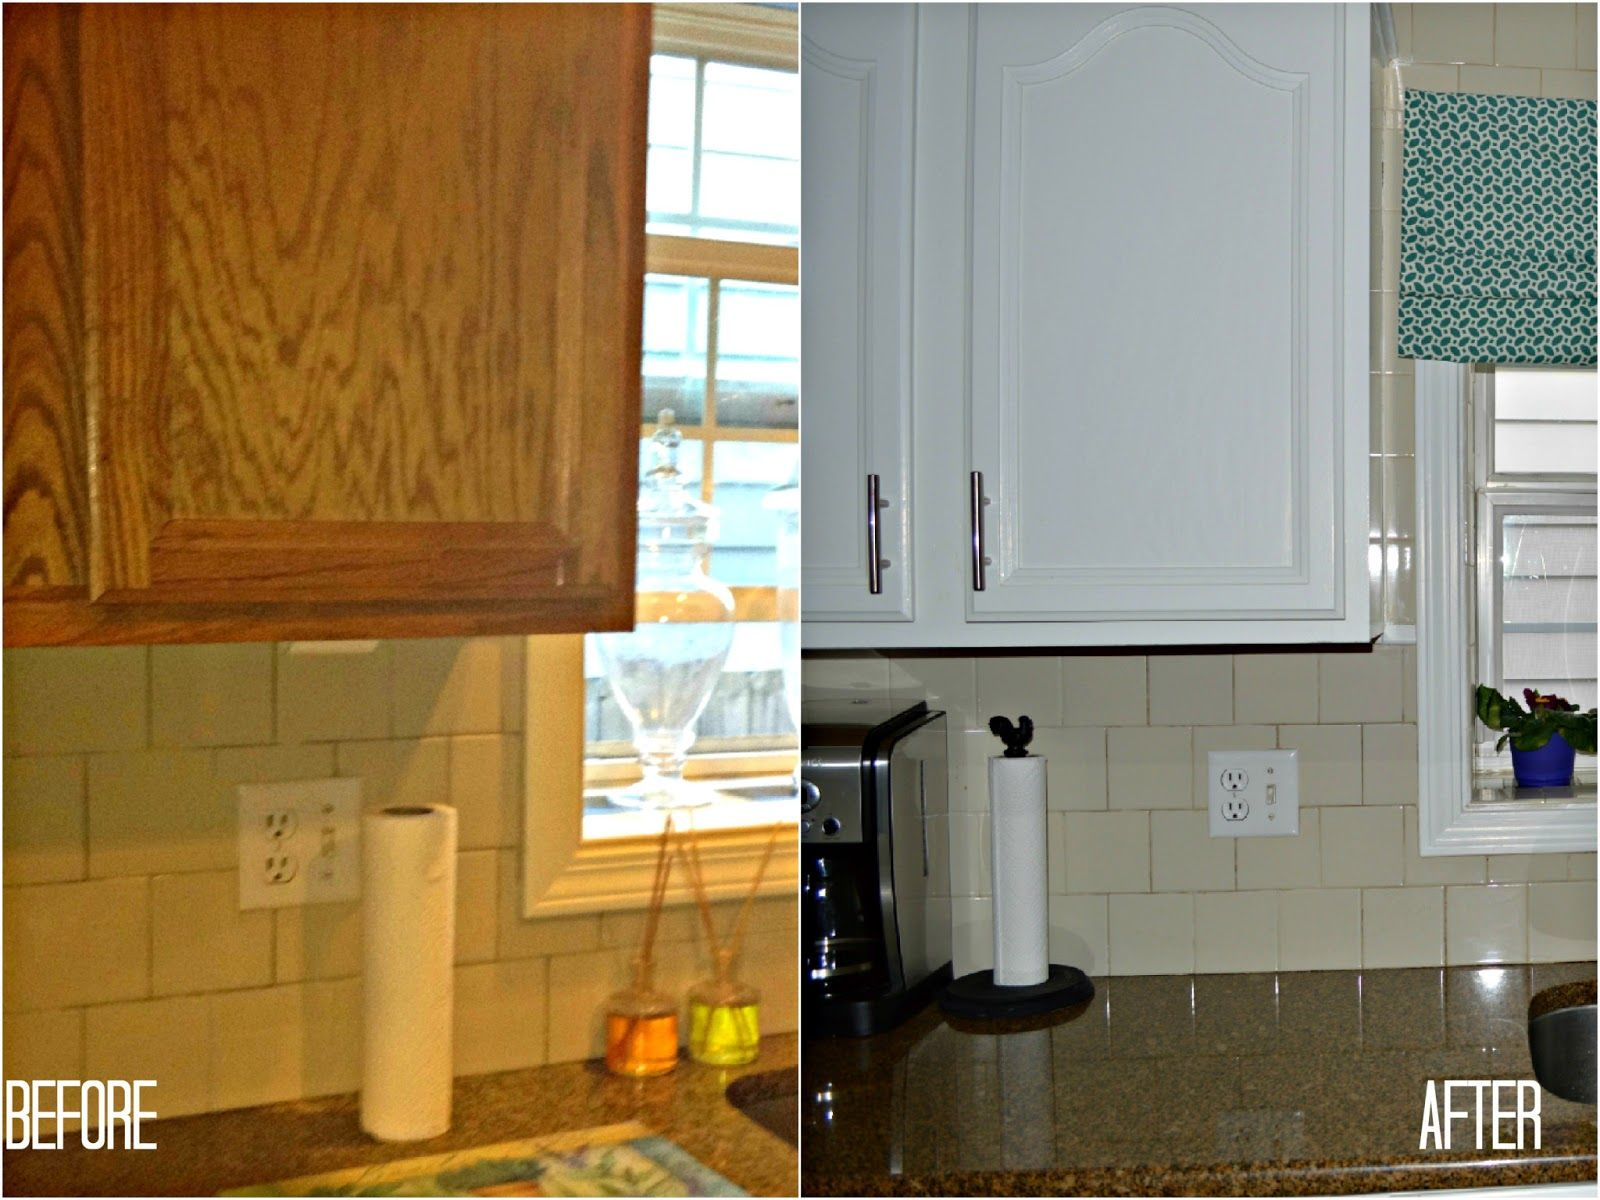 Kitchen cabinet refacing before and after in refacing for Reface kitchen cabinets ideas